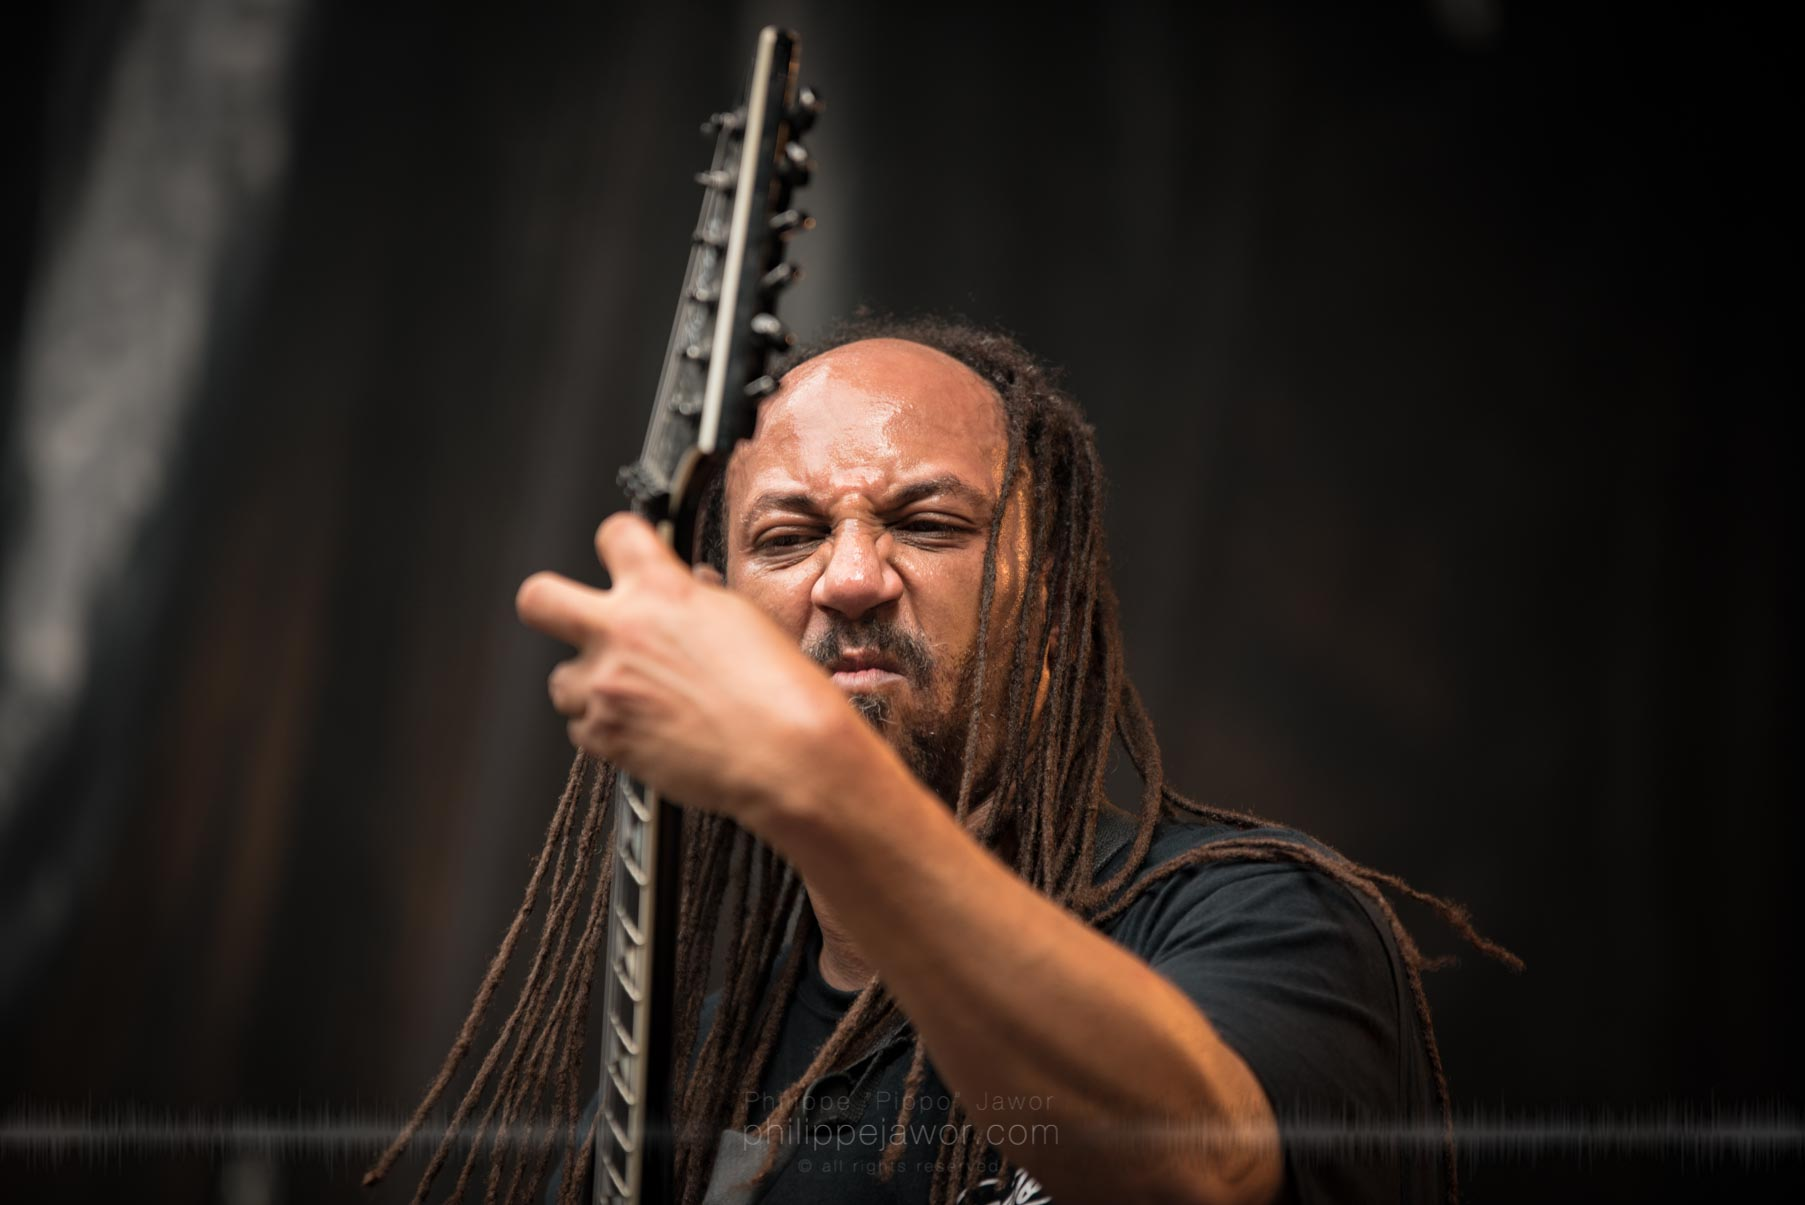 The American technical death metal band Suffocation live at Sylak Open Air festival, Saint Maurice de Gourdans, France, August 2017.  On assignment for Metal Obs' Magazine All rights reserved.